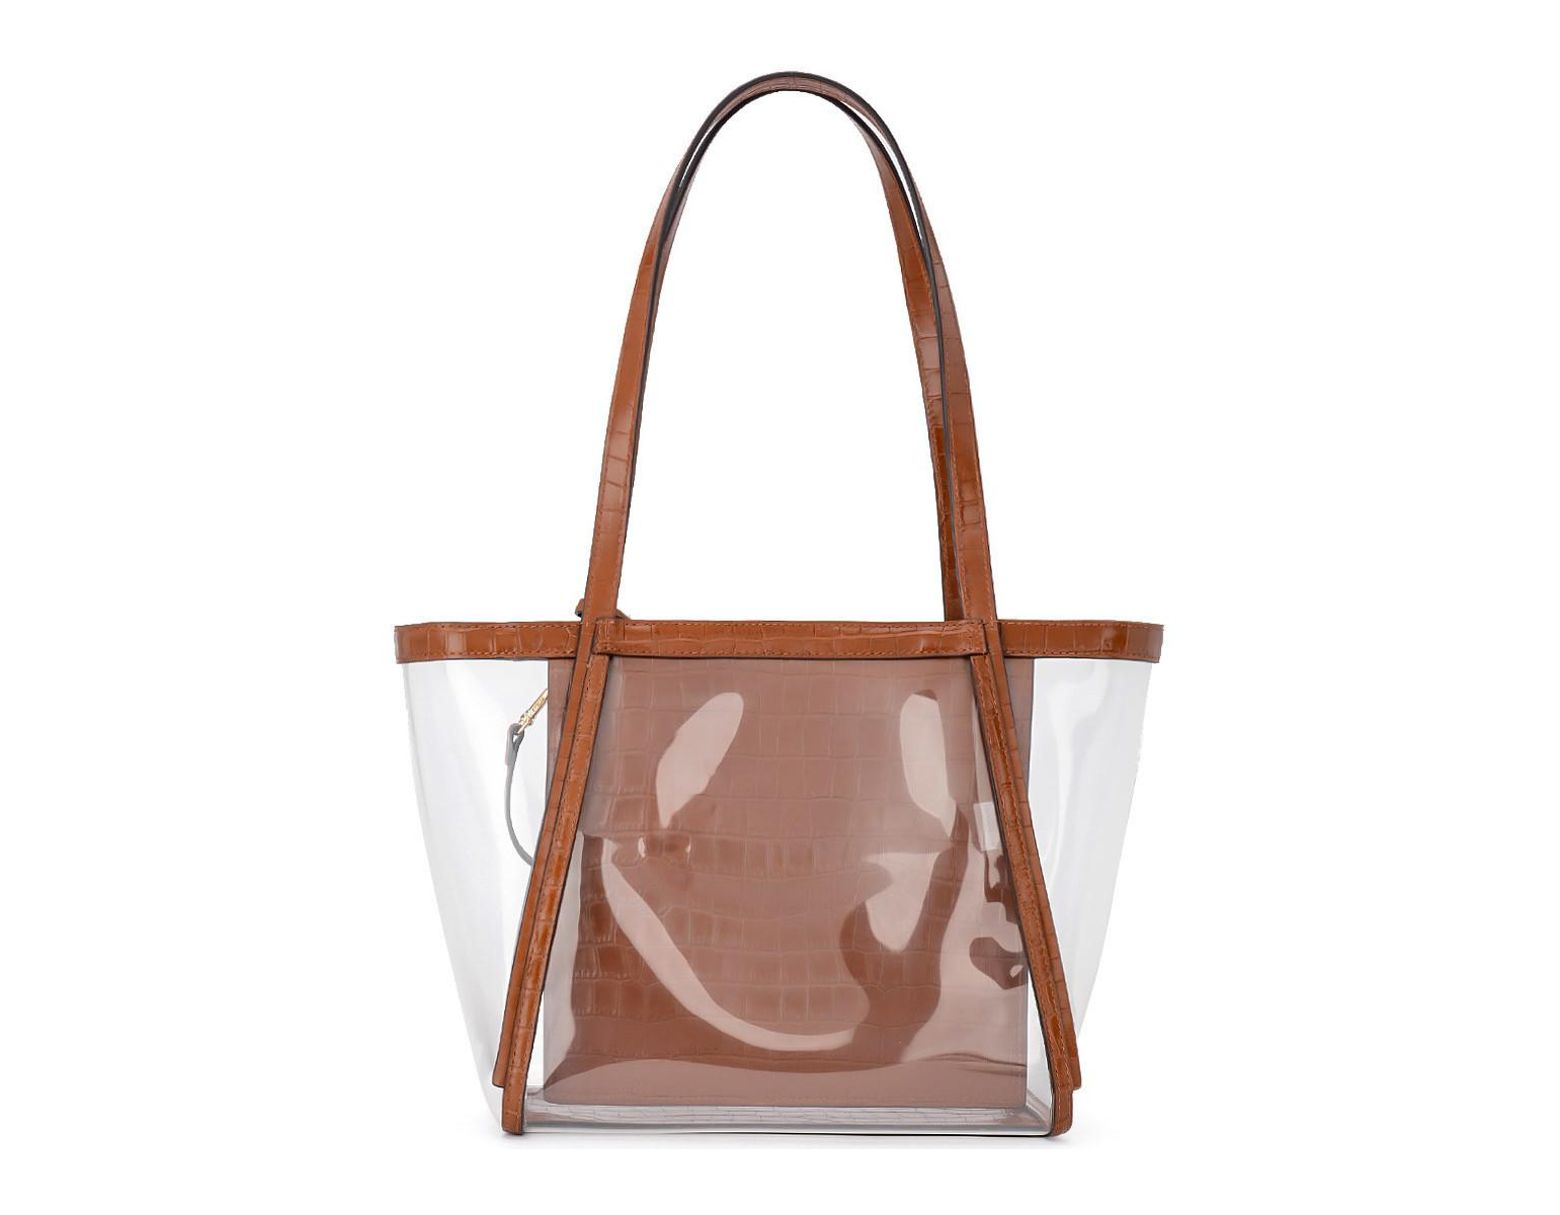 6901aff7ad MICHAEL Michael Kors Borsa A Spalla Whitney In Pvc E Pelle Cuoio Women's  Shoulder Bag In Brown in Brown for Men - Lyst